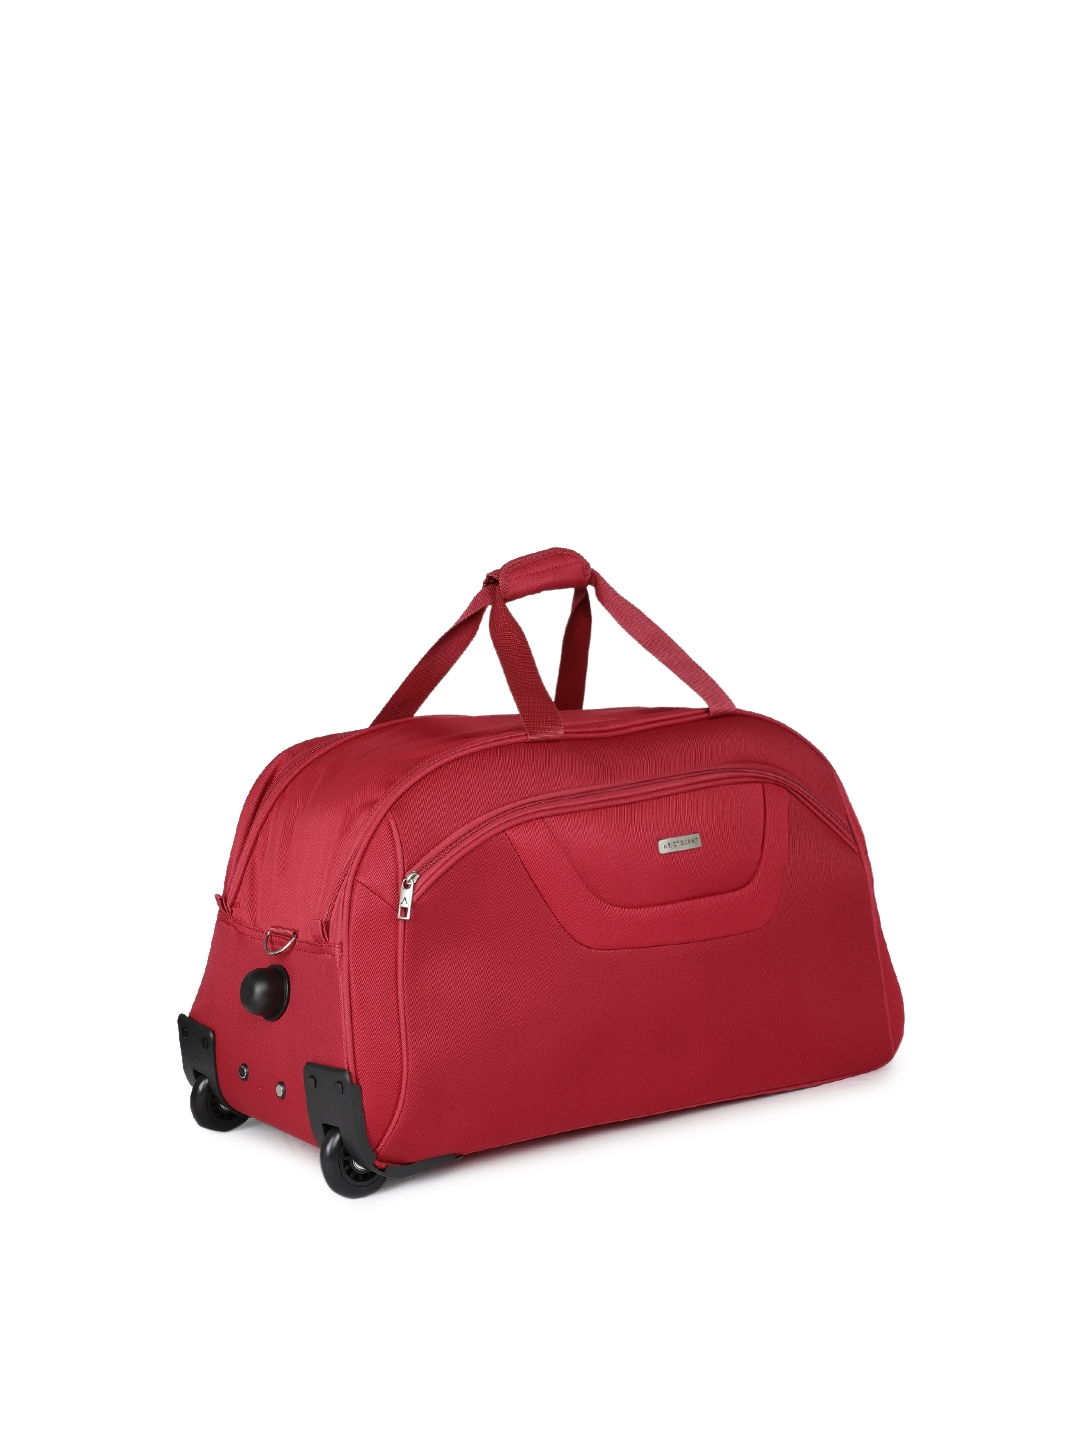 a5a7400c35 Buy Aristrocrat Unisex Red Medium Cactus V DFT 67 Trolley Duffel Bag ...